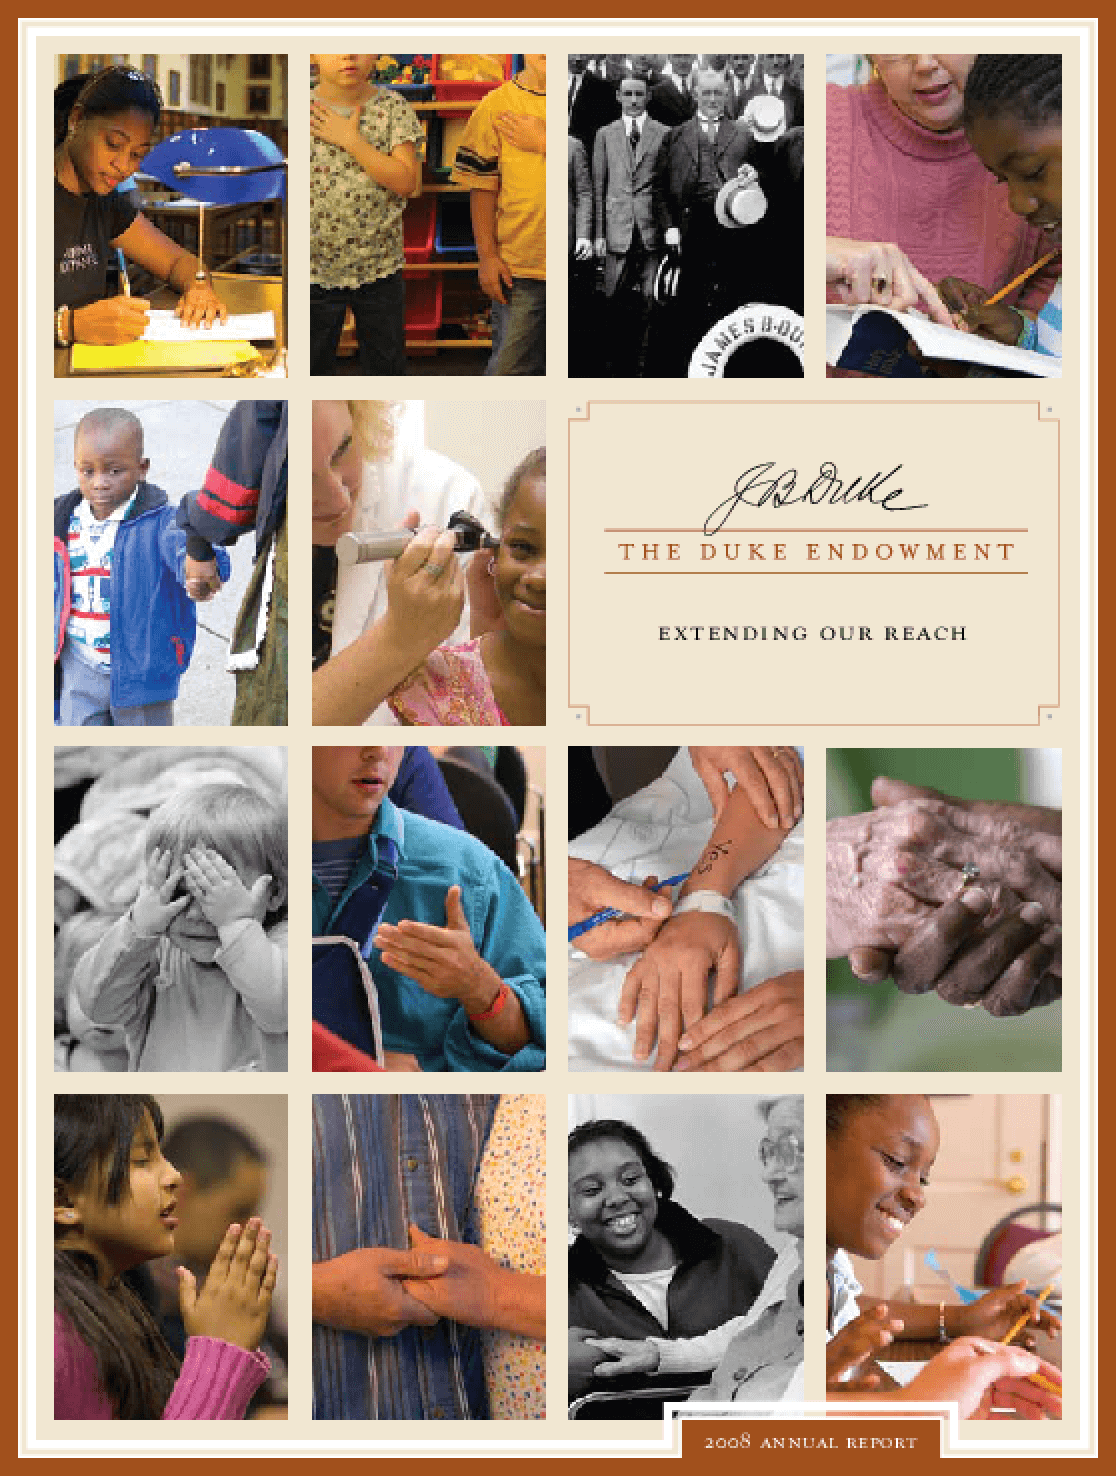 Duke Endowment - 2008 Annual Report: Extending Our Reach